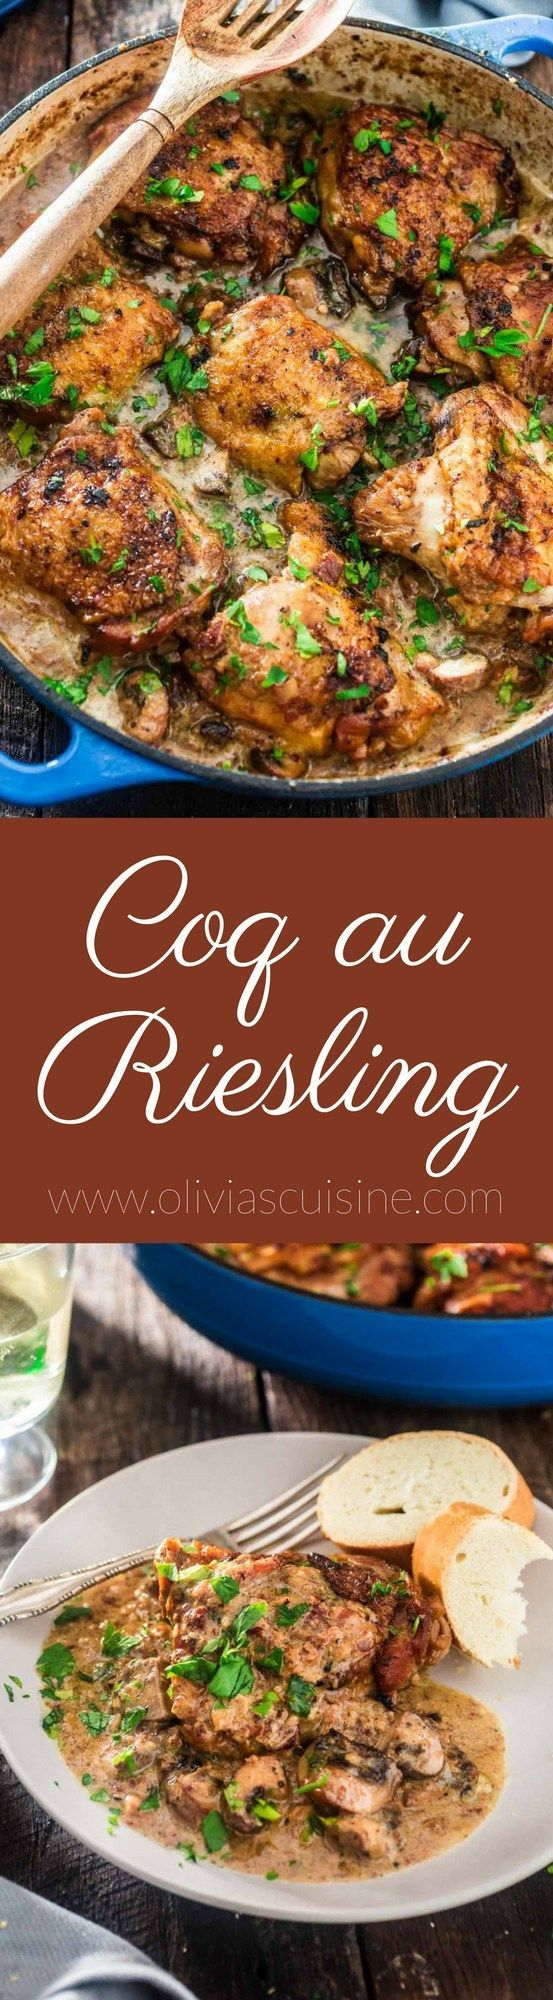 Coq au Riesling (Chicken Thighs Braised in White Wine) | http://www.oliviascuisine.com | A creamy twist on the classic Coq au Vin. Chicken thighs, bacon and mushrooms are braised in an off-dry Riesling and heavy cream is added at the end to make it even more delicious! Oh, and it's all made in one pot! (In partnership with /theseekerwines/)